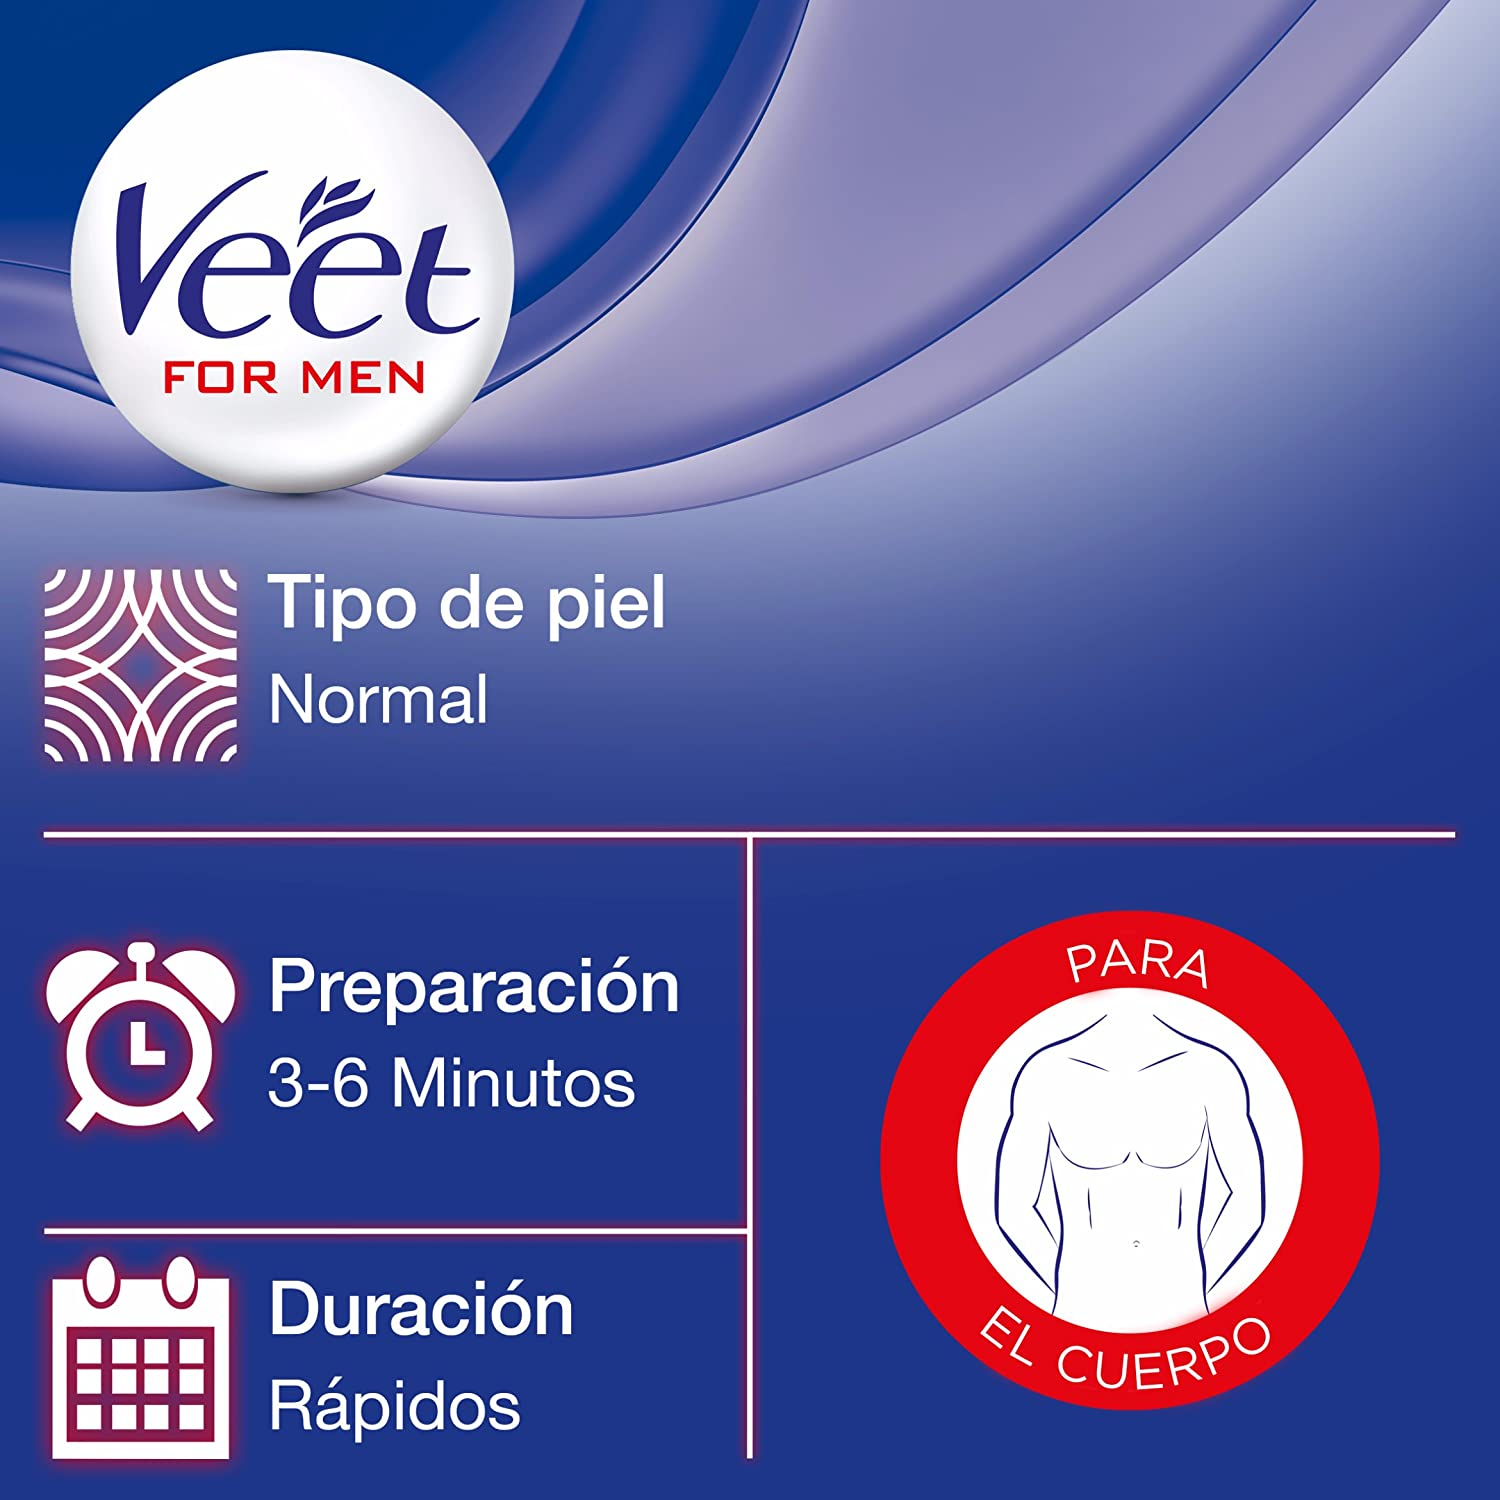 Veet for Men Crema depilatoria en Spray para hombre, Piel Normal, 150 ml: Amazon.es: Belleza